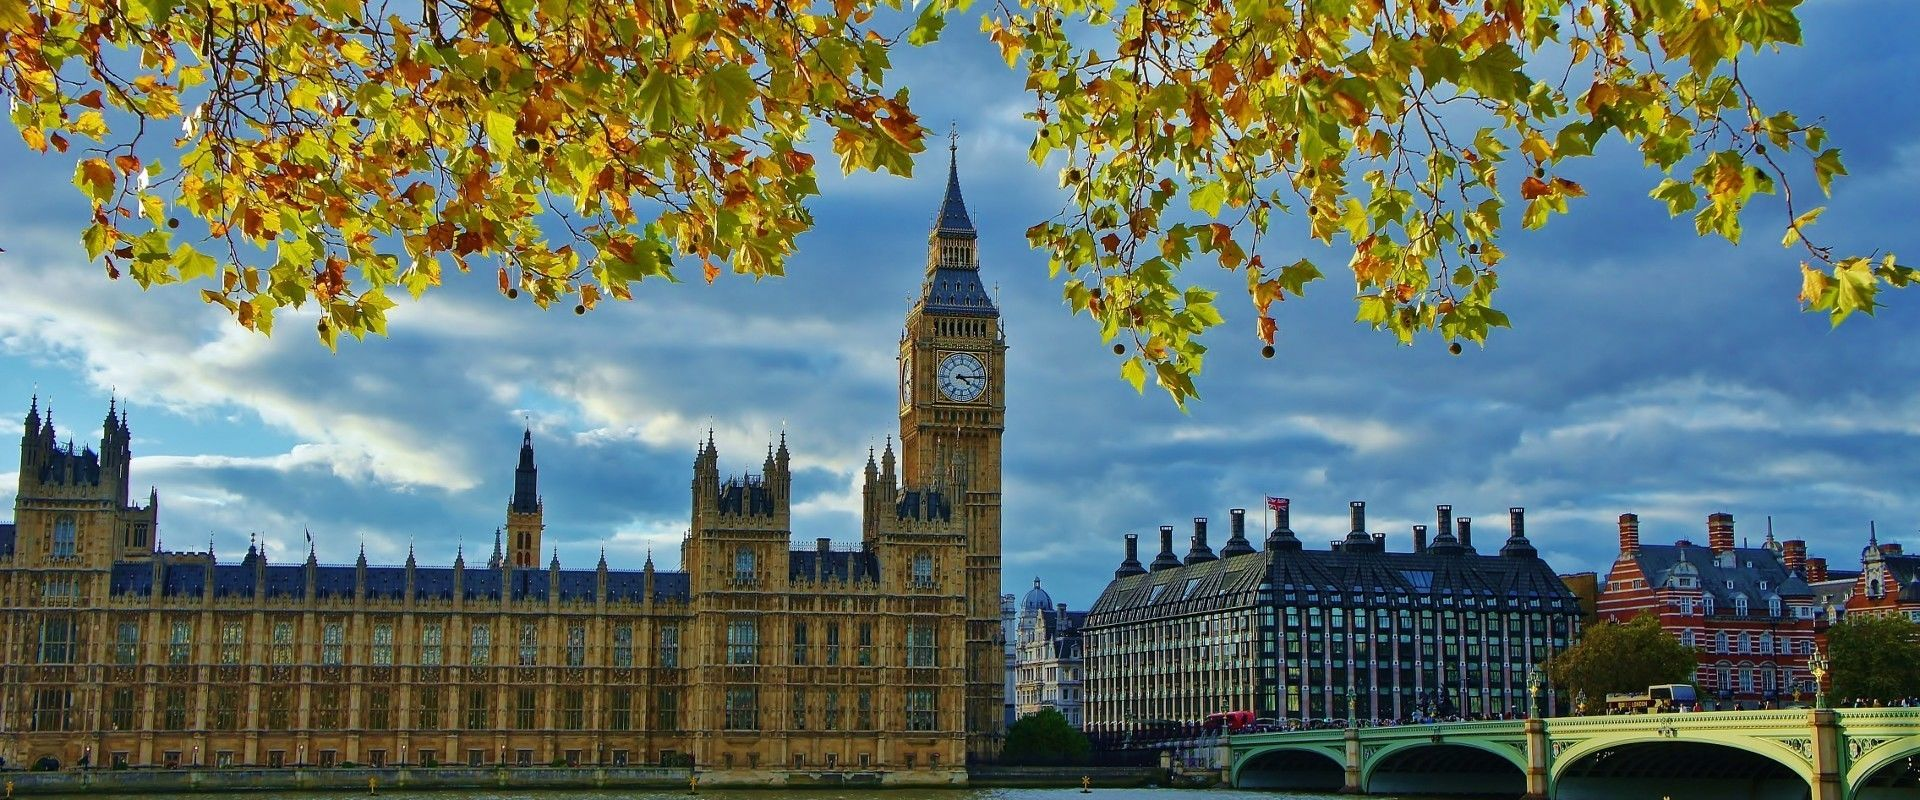 Autumn Colours at Big Ben